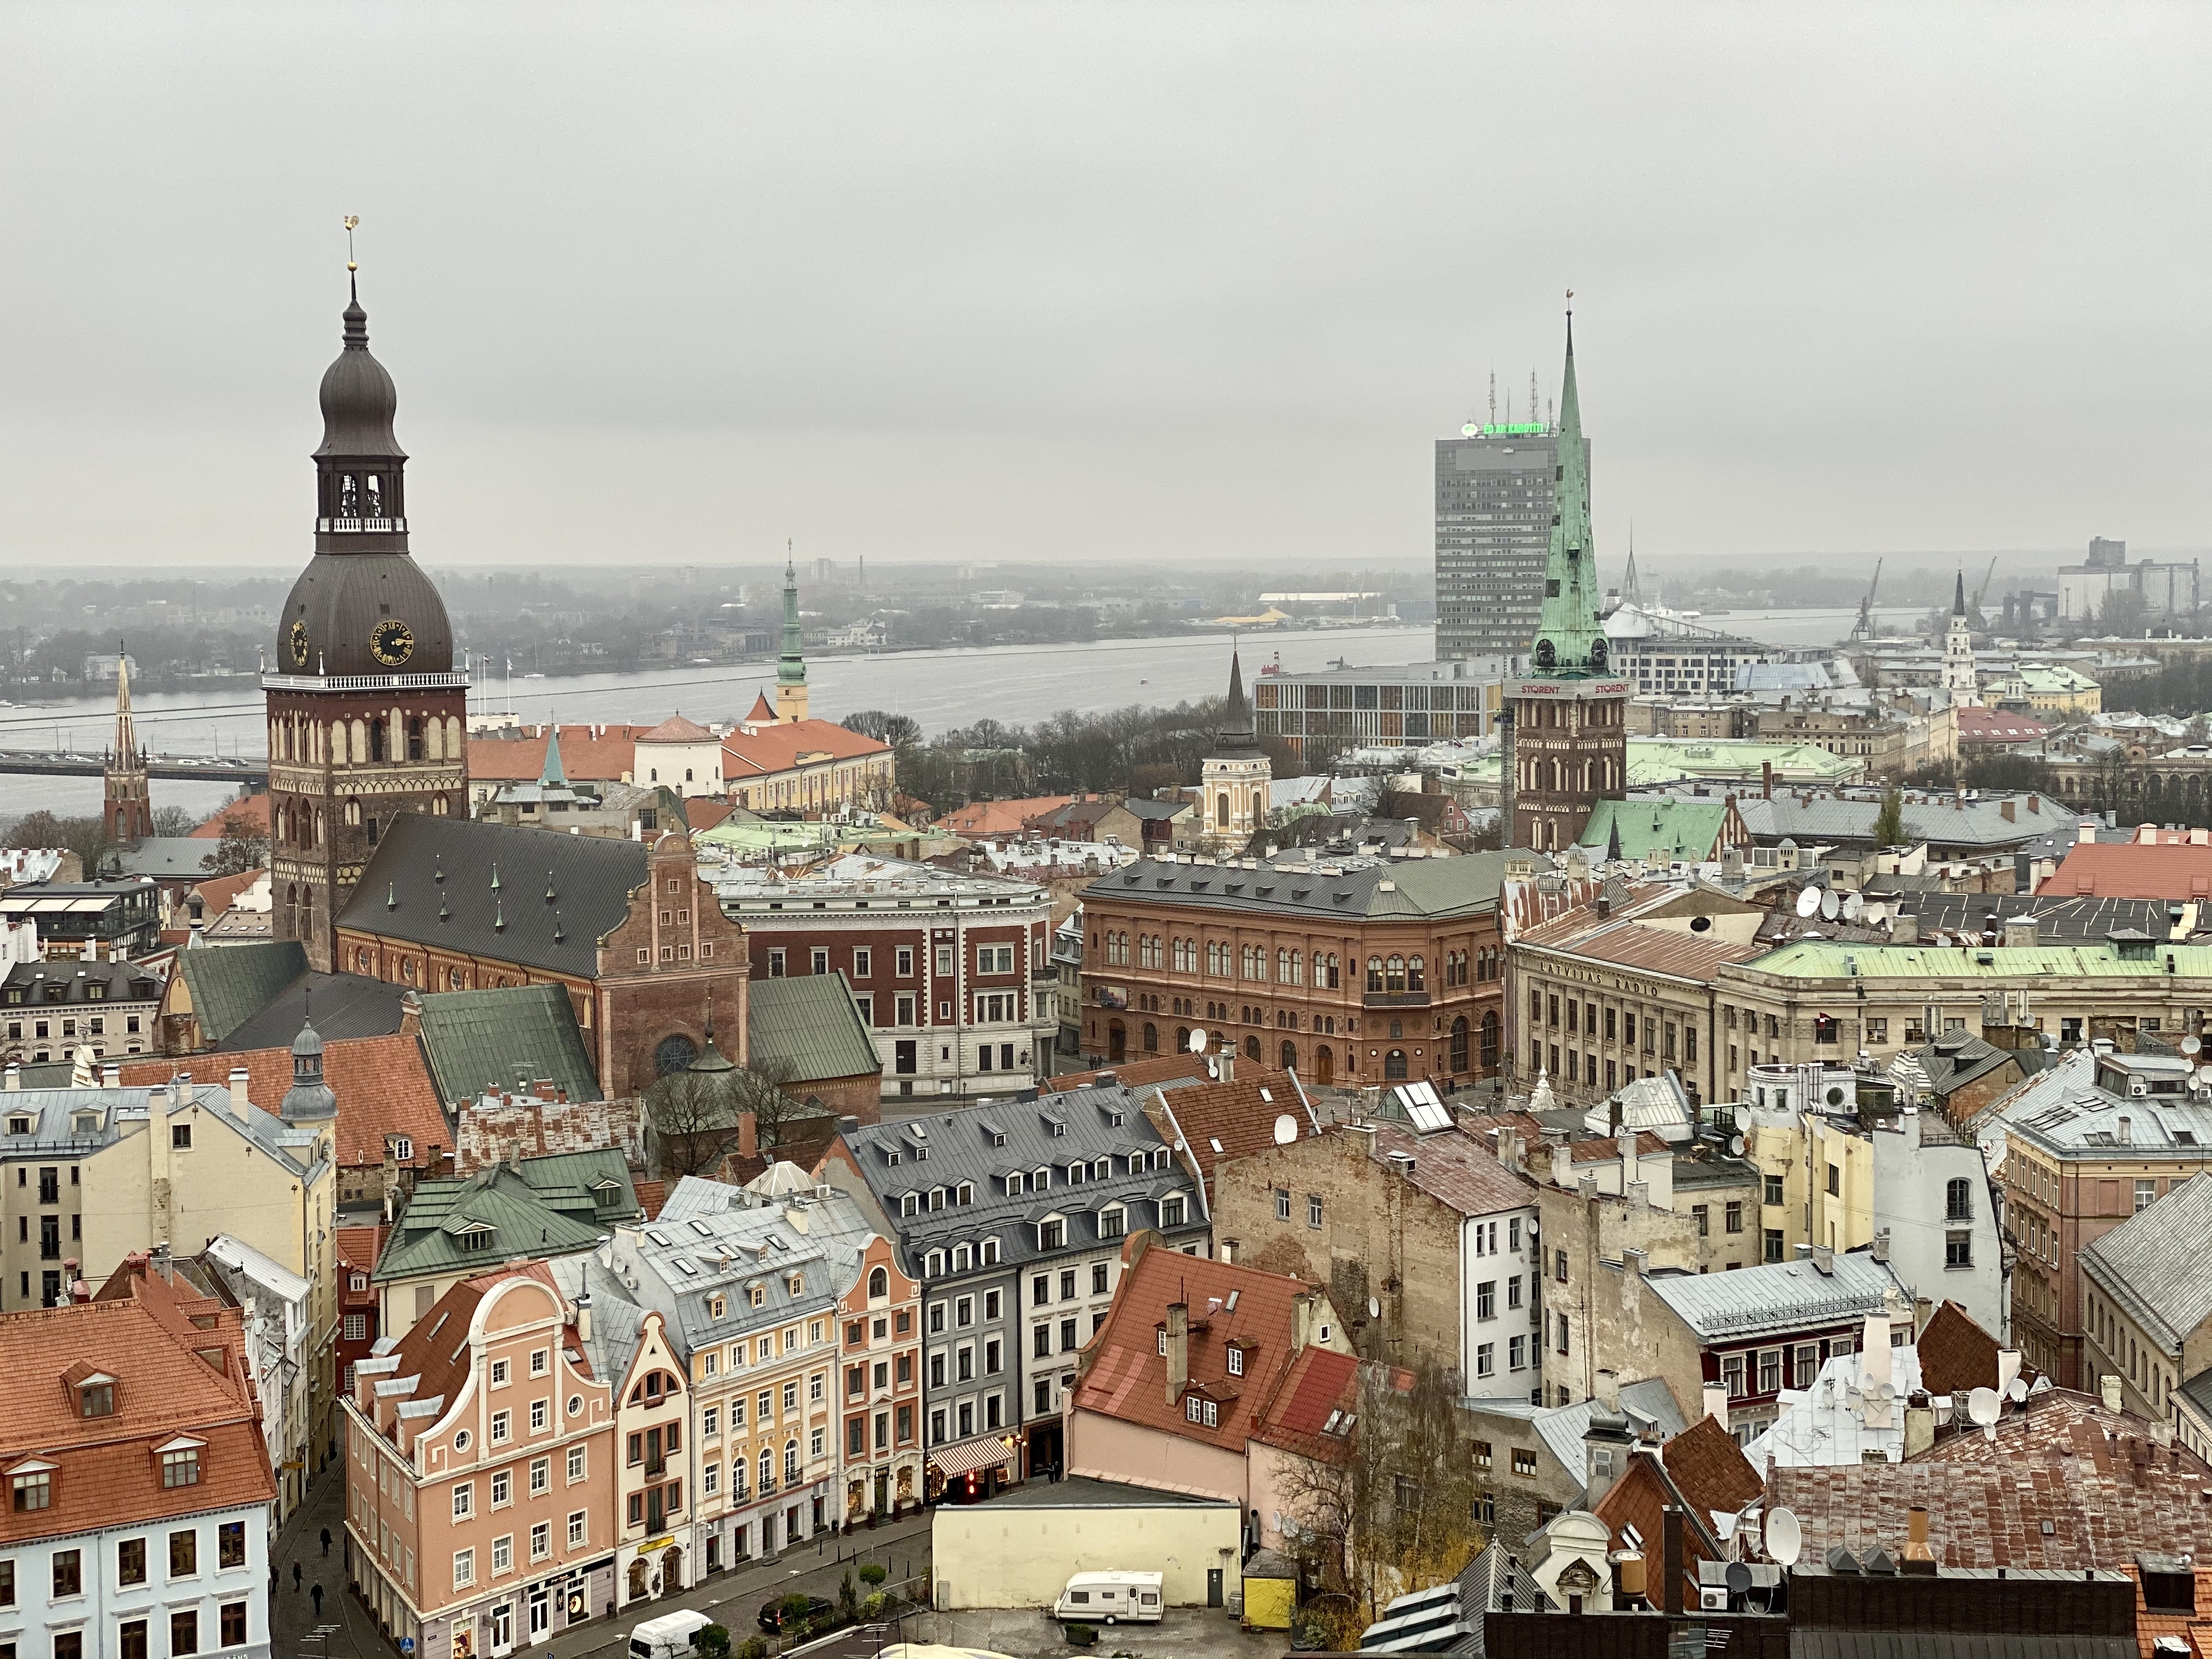 View of Riga, Latvia, from St. Peter's Church.